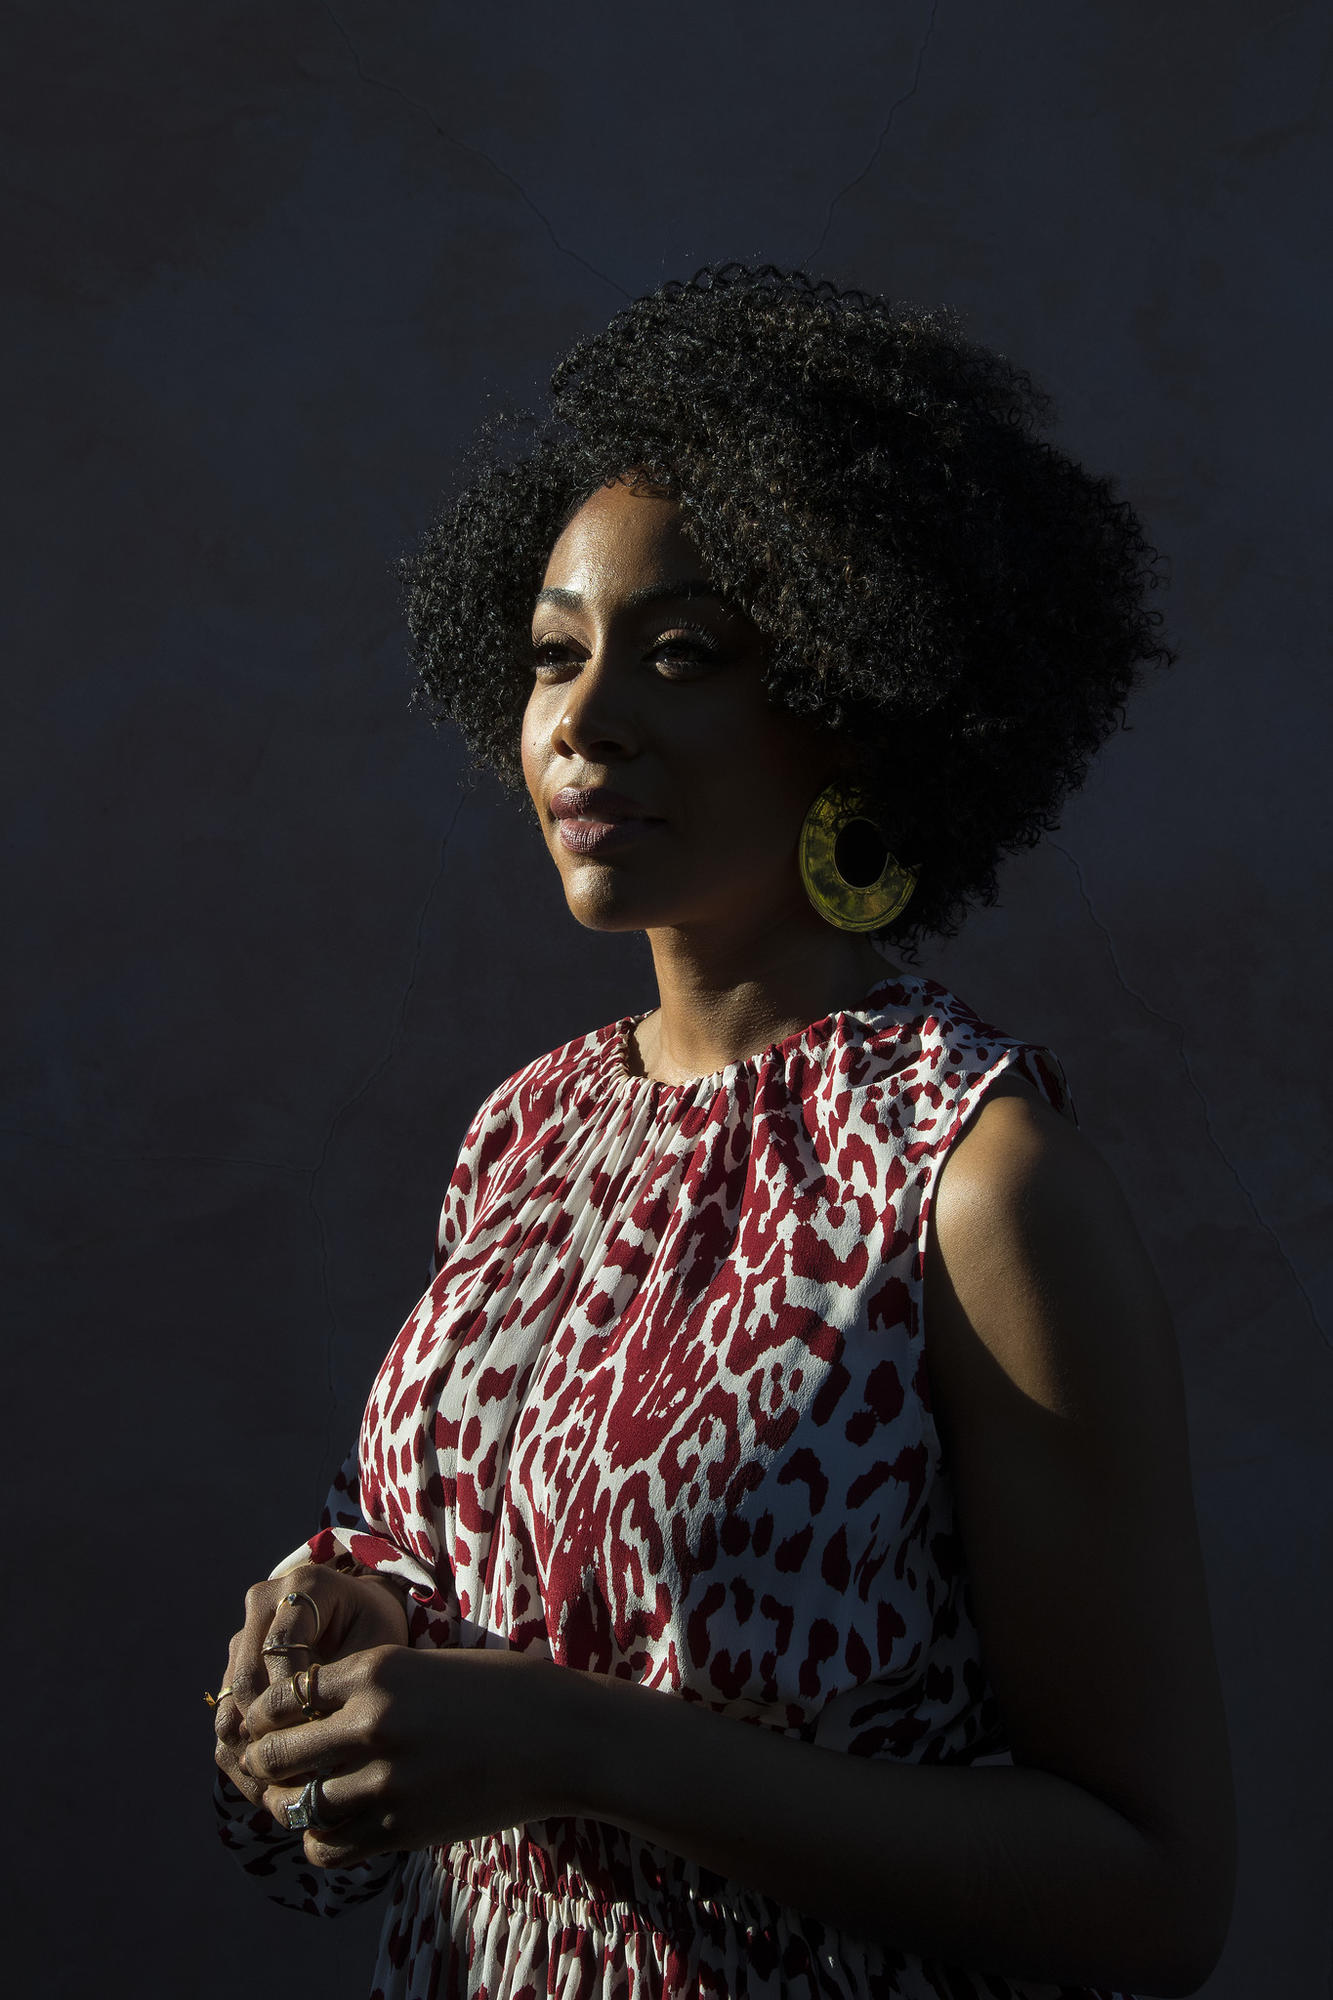 LOS ANGELES, CA - MARCH 1, 2018: Actress Simone Missick stars in the new movie Jinn, which is compe